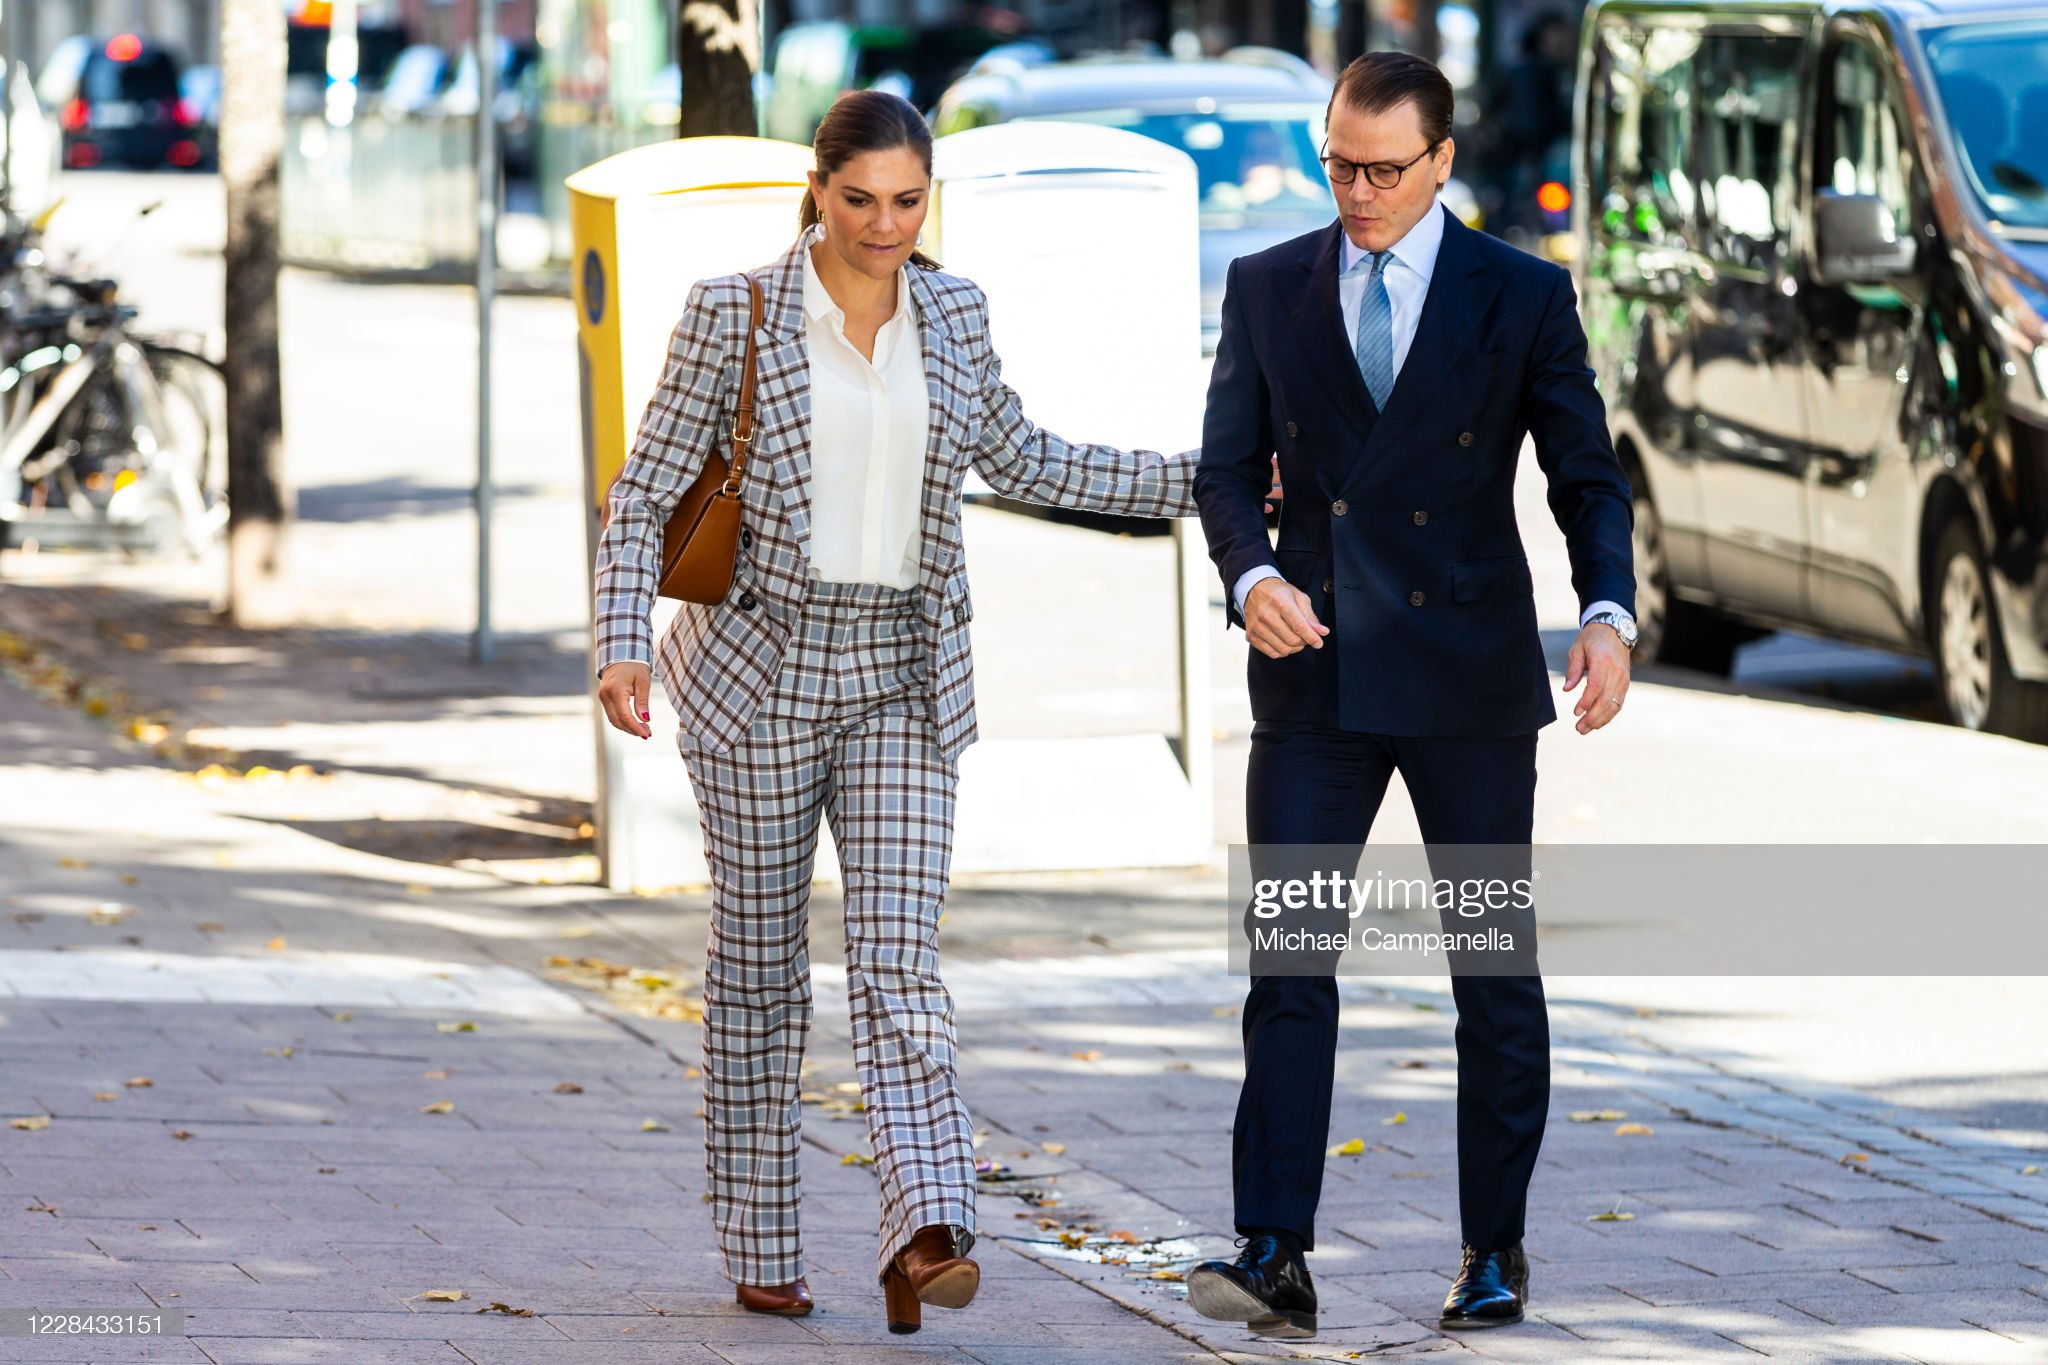 crown-princess-victoria-and-prince-daniel-of-sweden-visit-the-swedish-picture-id1228433151